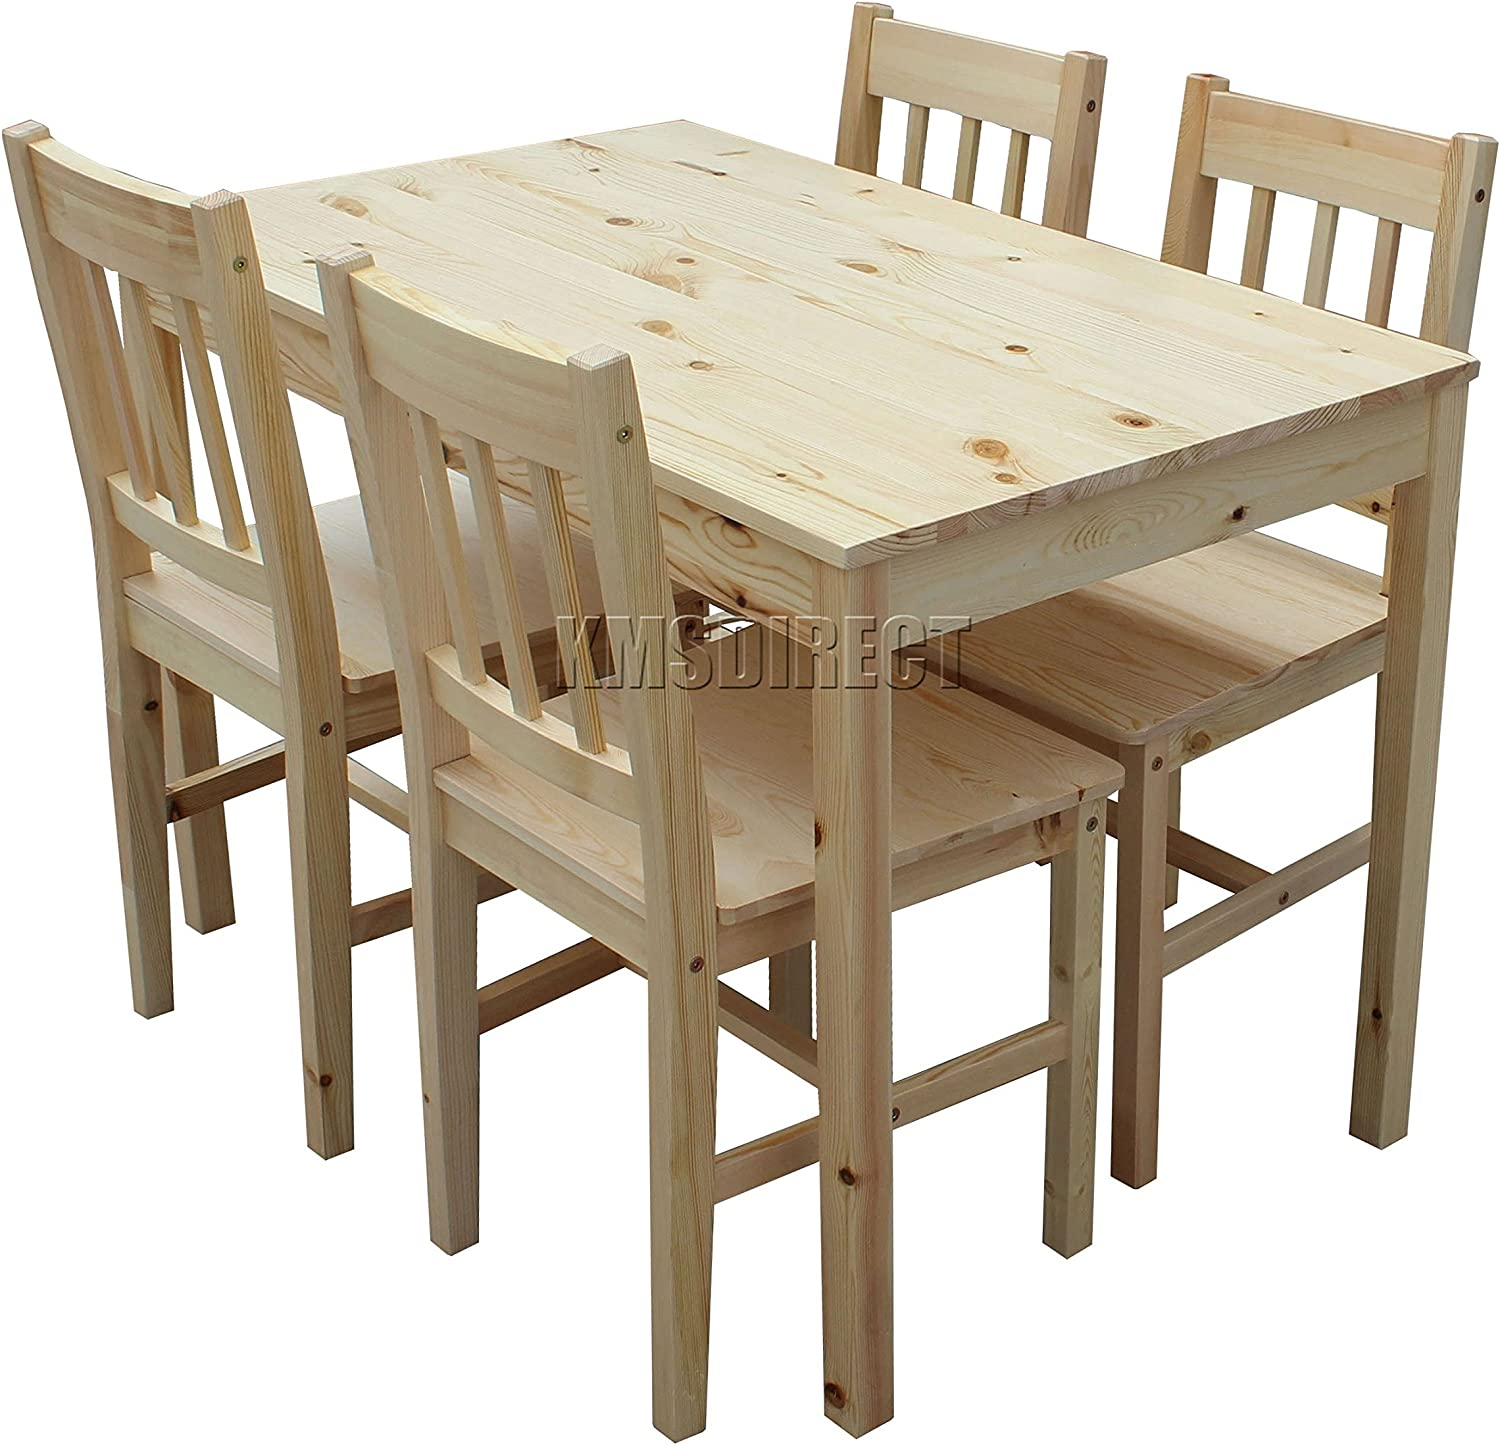 WestWood Quality Solid Wooden Dining Table and 4 Chairs Set Kitchen Furniture FH-DS02 Natural Pine